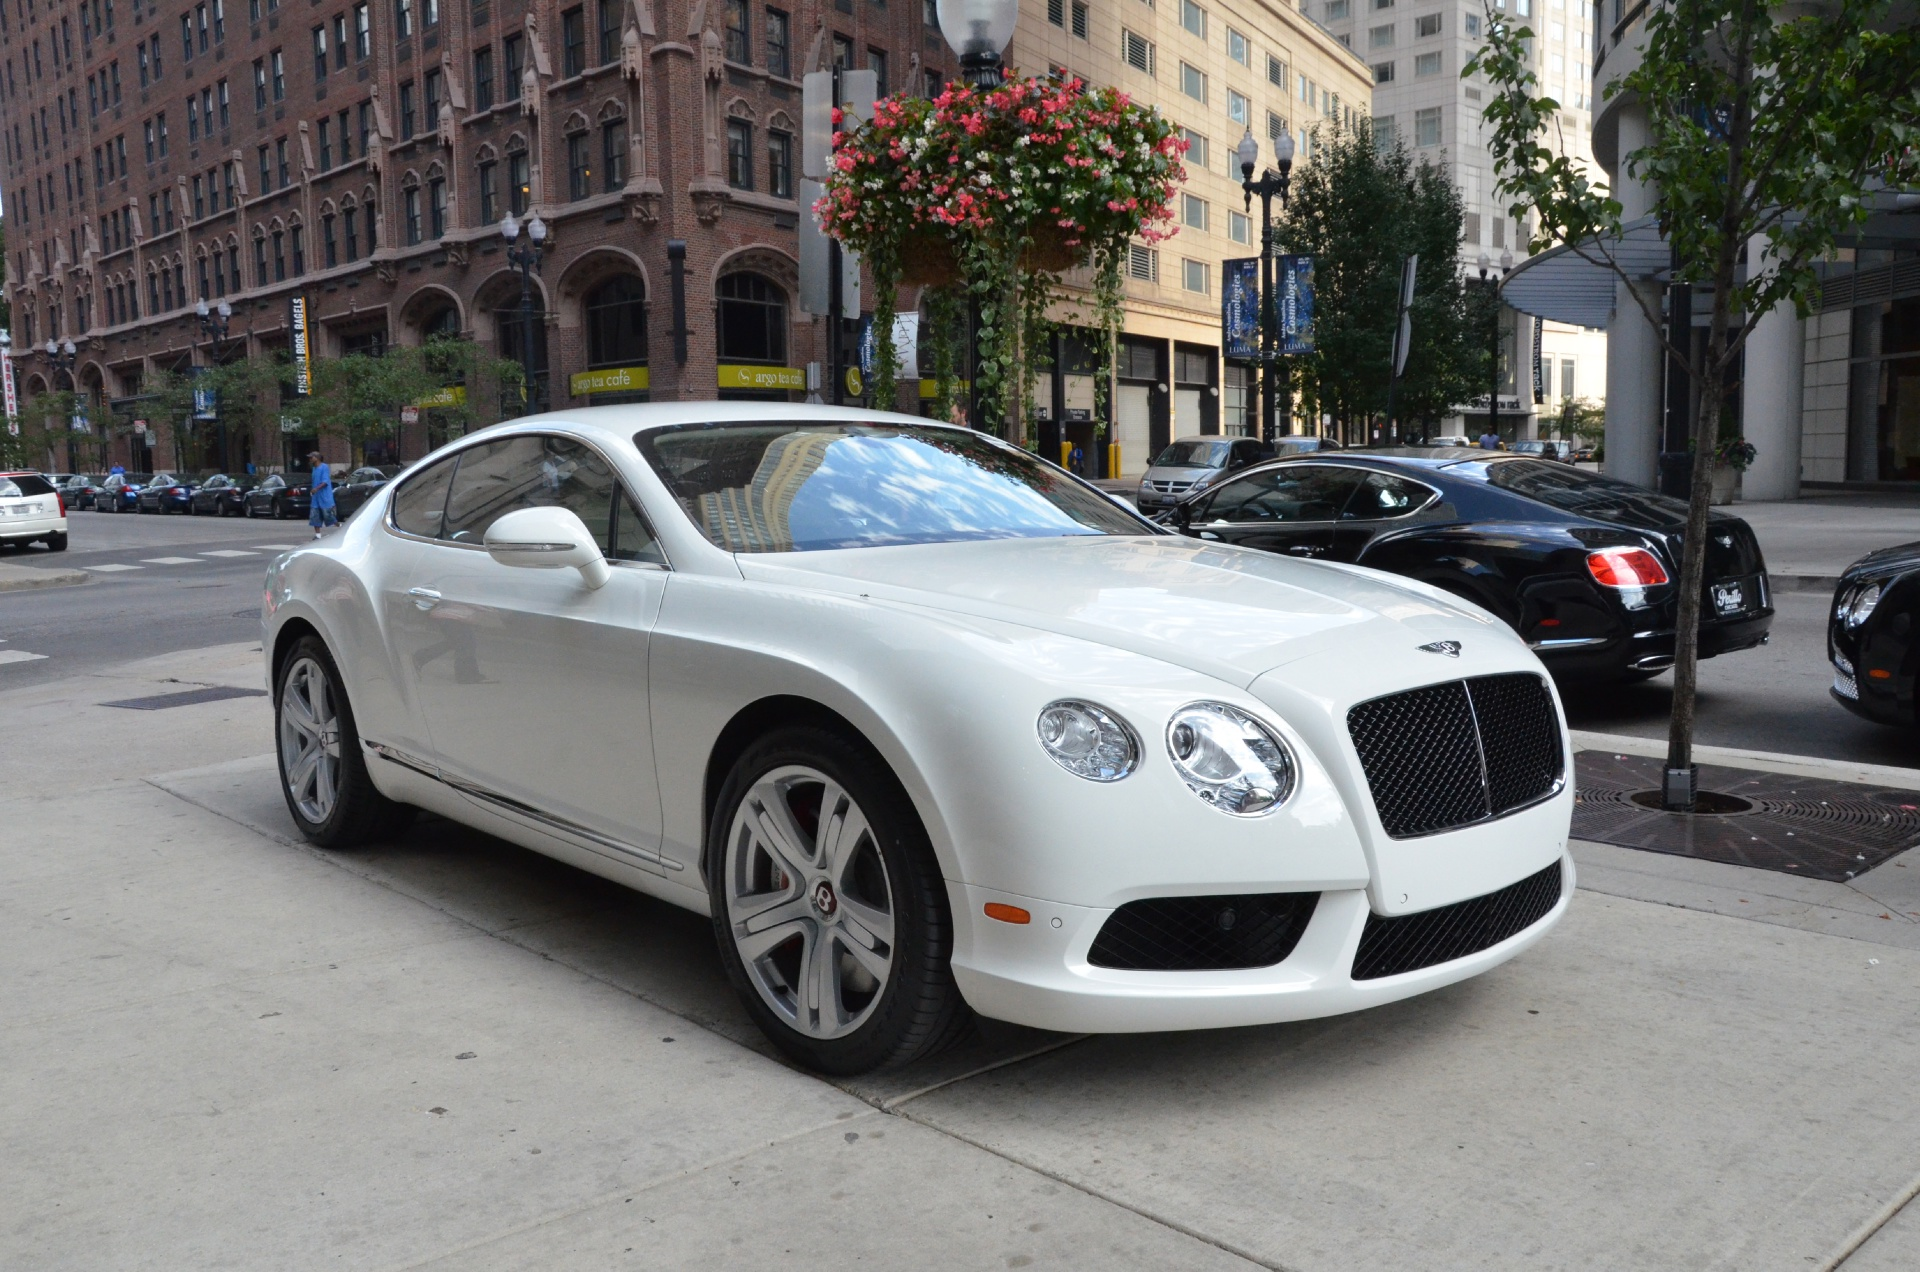 2013 bentley continental gt v8 stock b449 s for sale near chicago il il bentley dealer. Black Bedroom Furniture Sets. Home Design Ideas